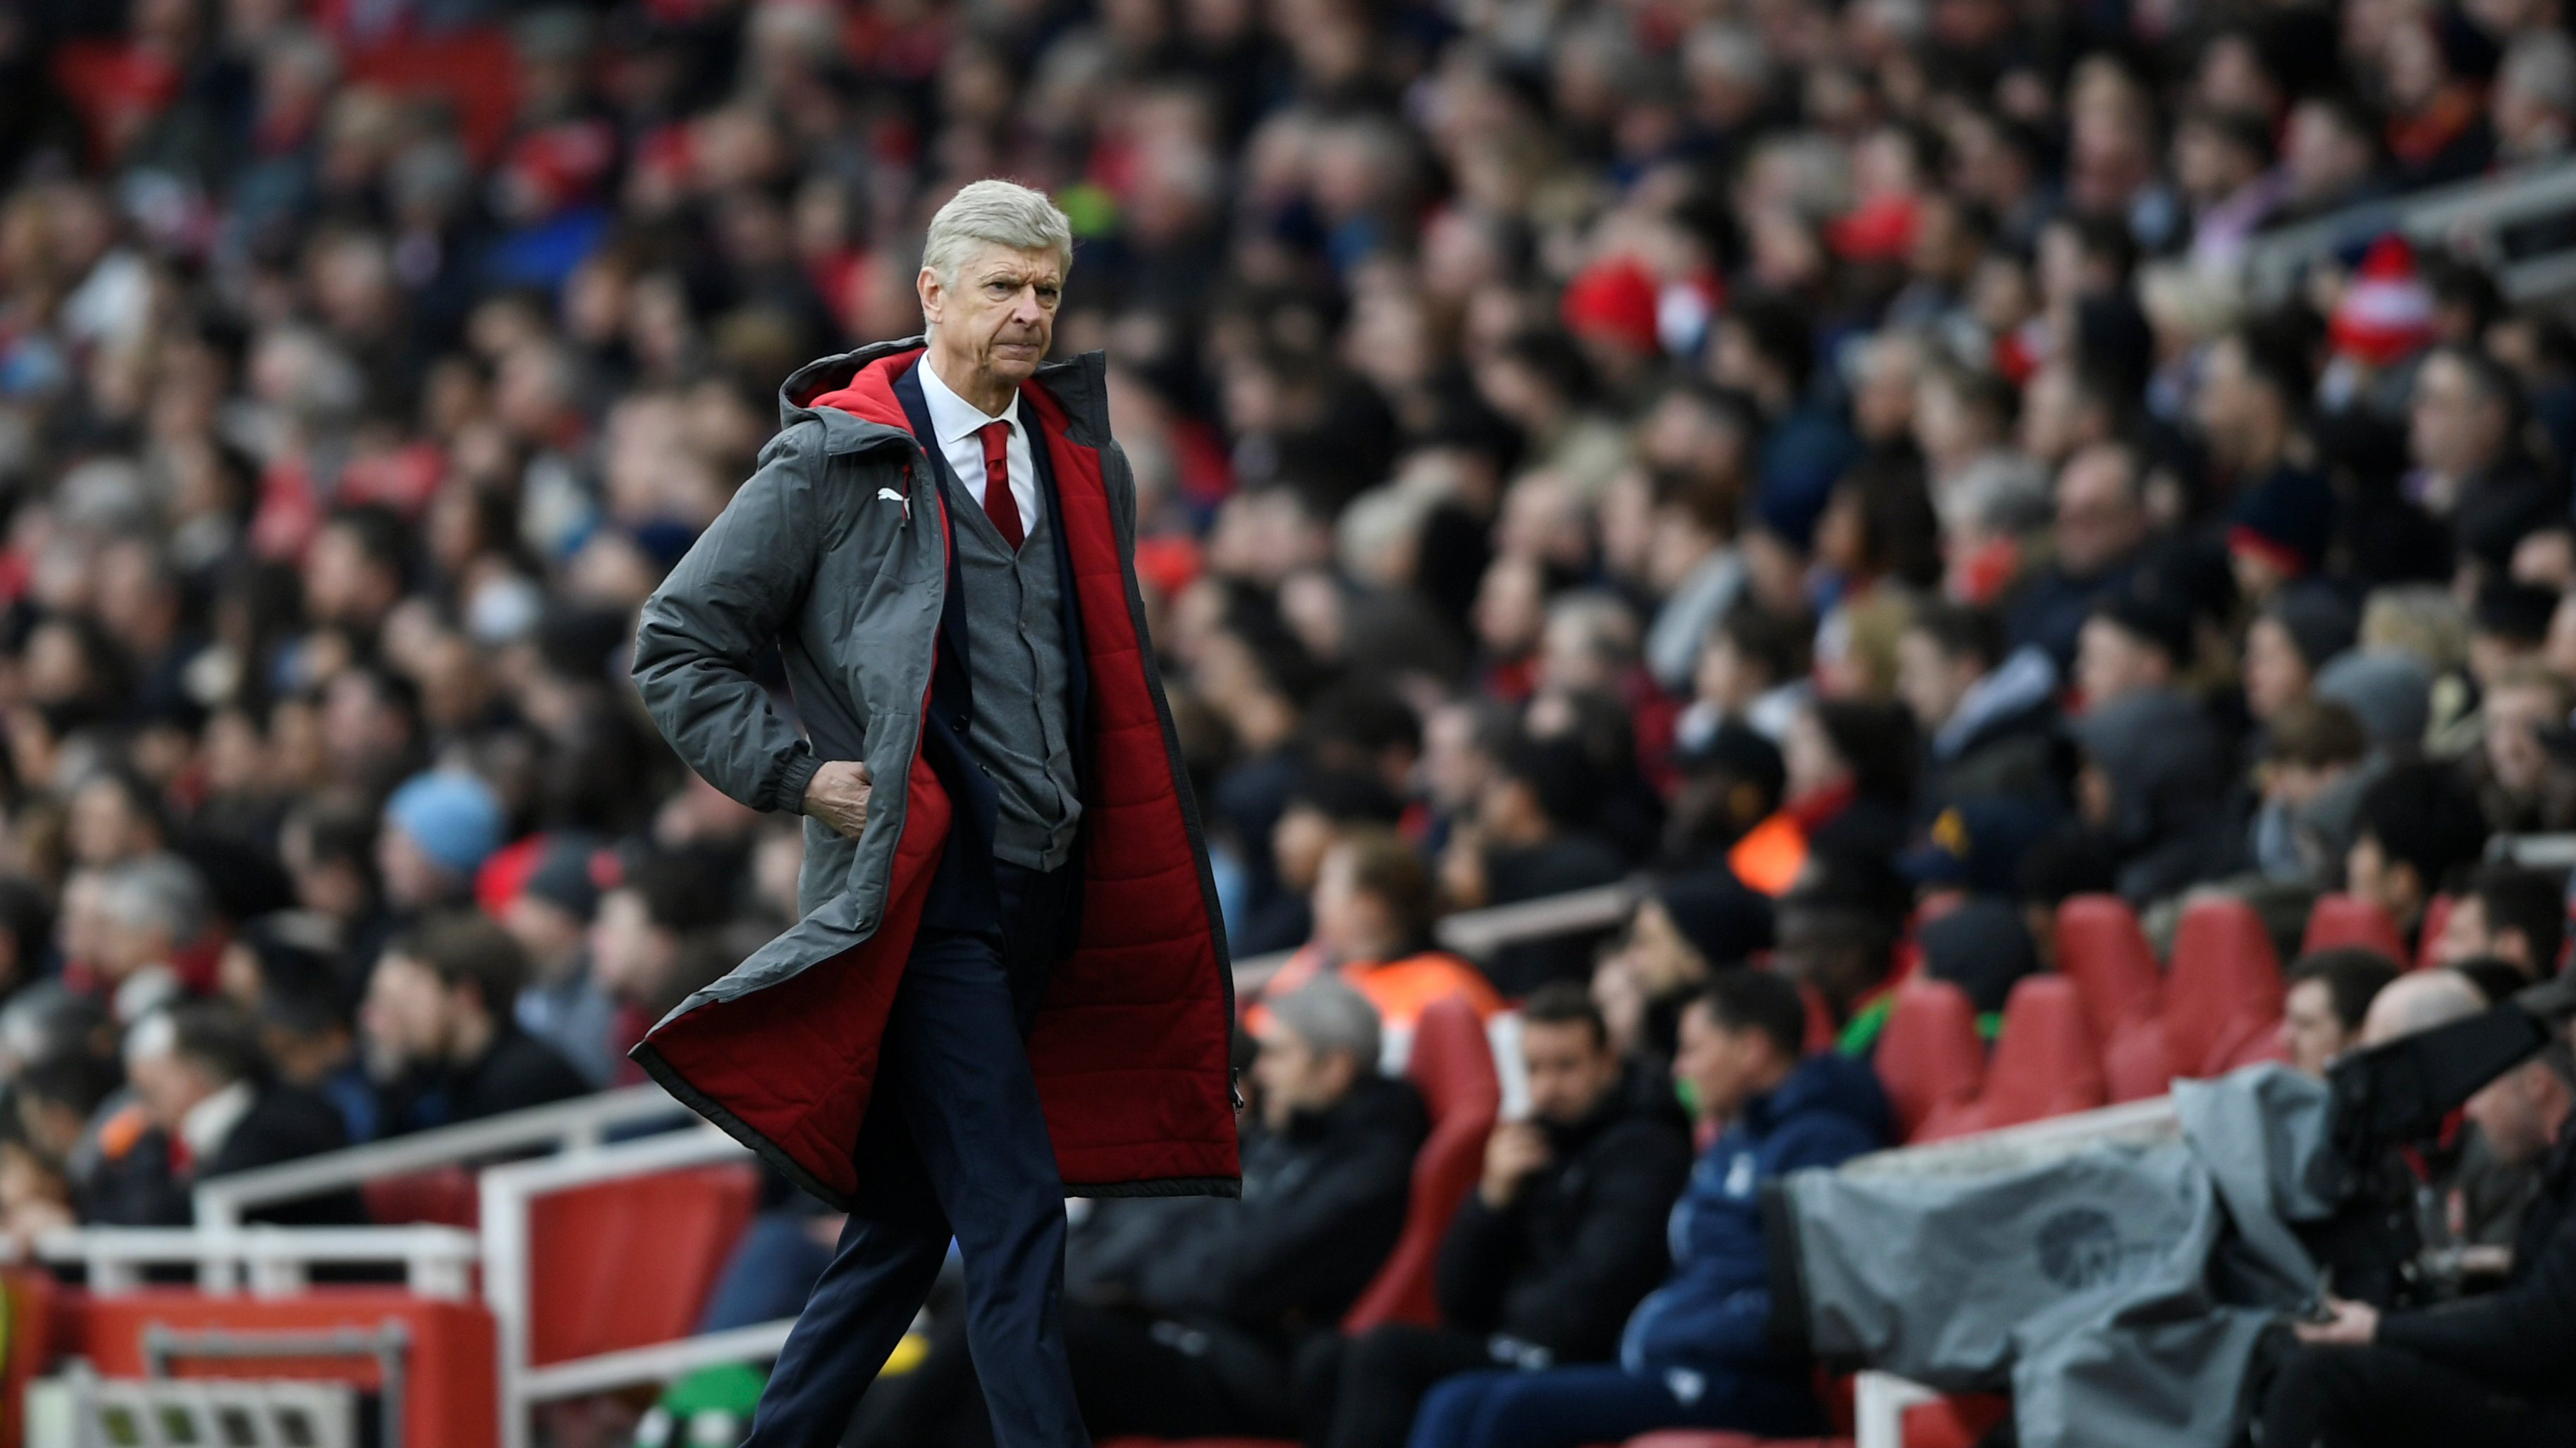 Soccer Football - Premier League - Arsenal vs Watford - Emirates Stadium, London, Britain - March 11, 2018 Arsenal manager Arsene Wenger